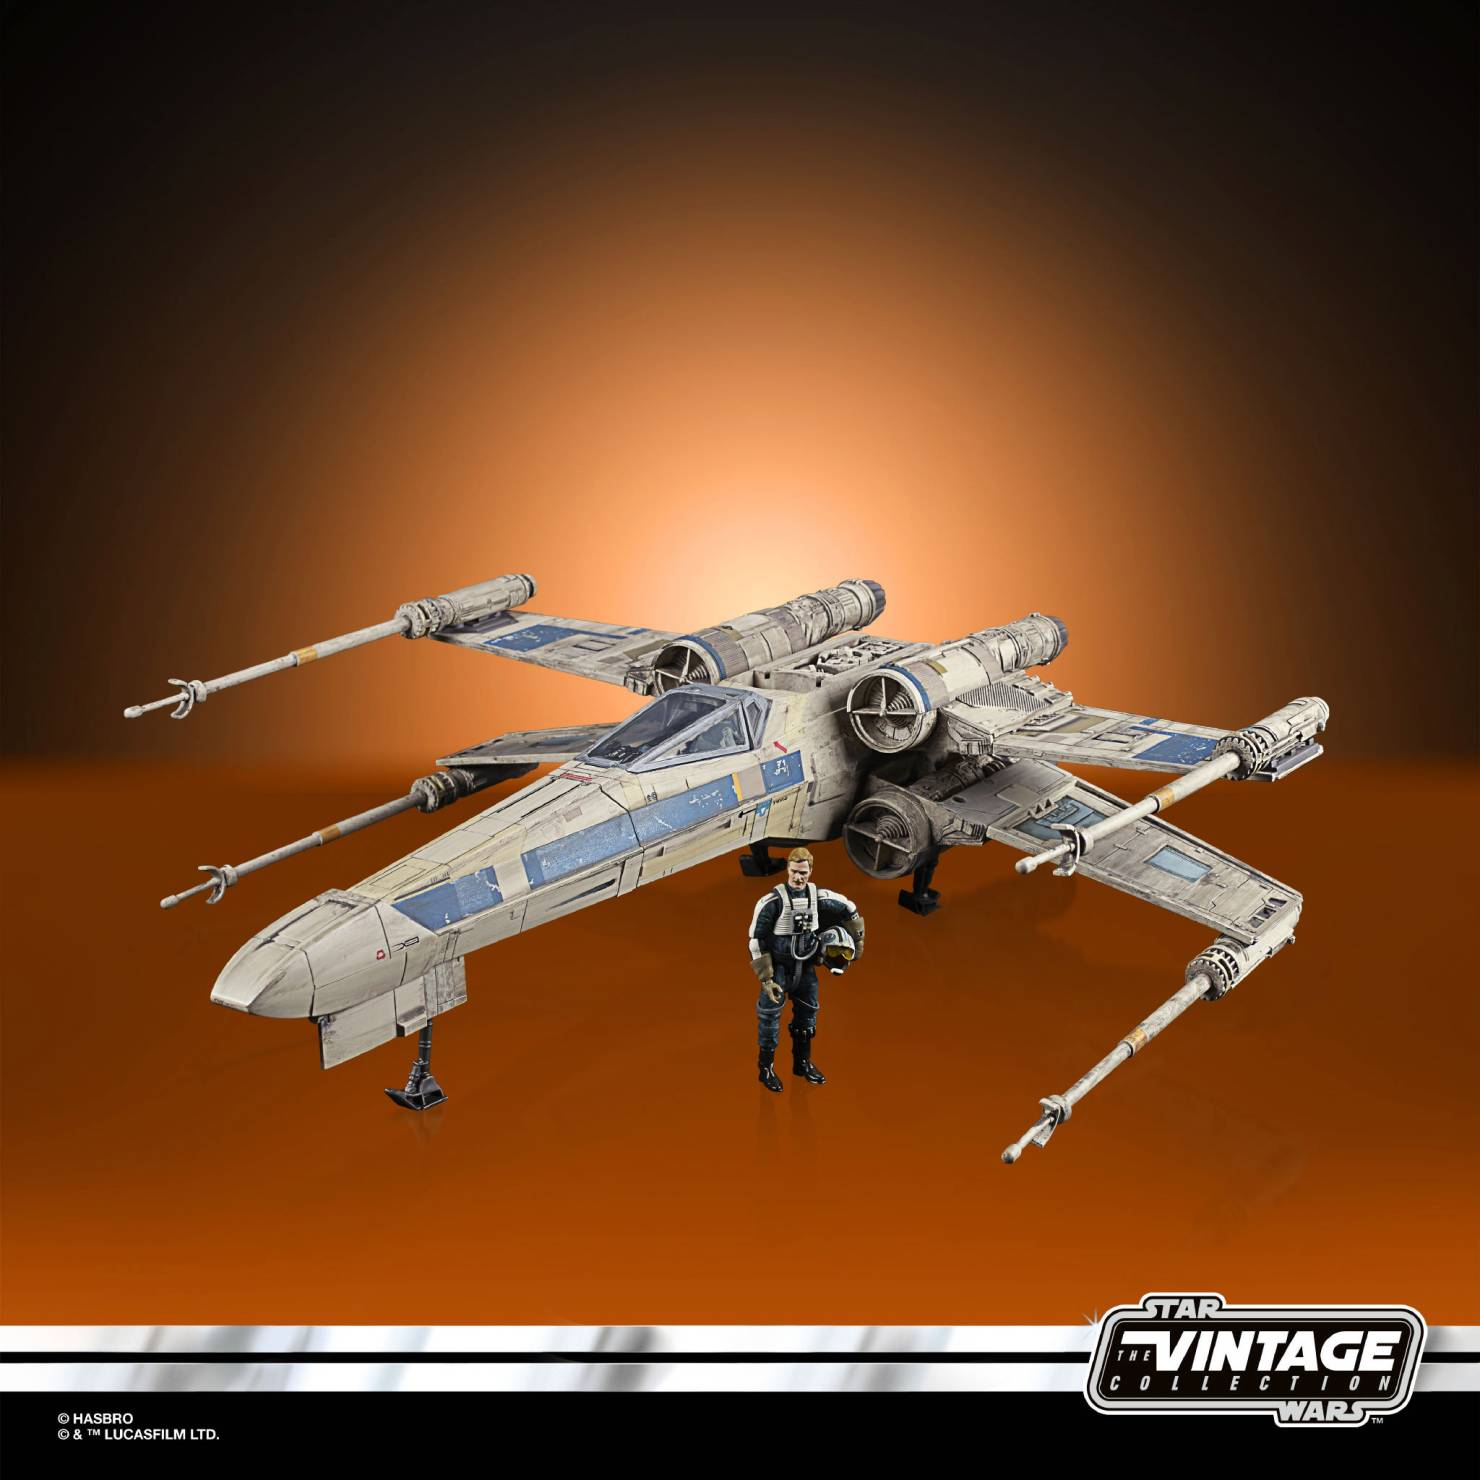 Star Wars Vintage Collection shines in Hasbro's Fan First Wednesday